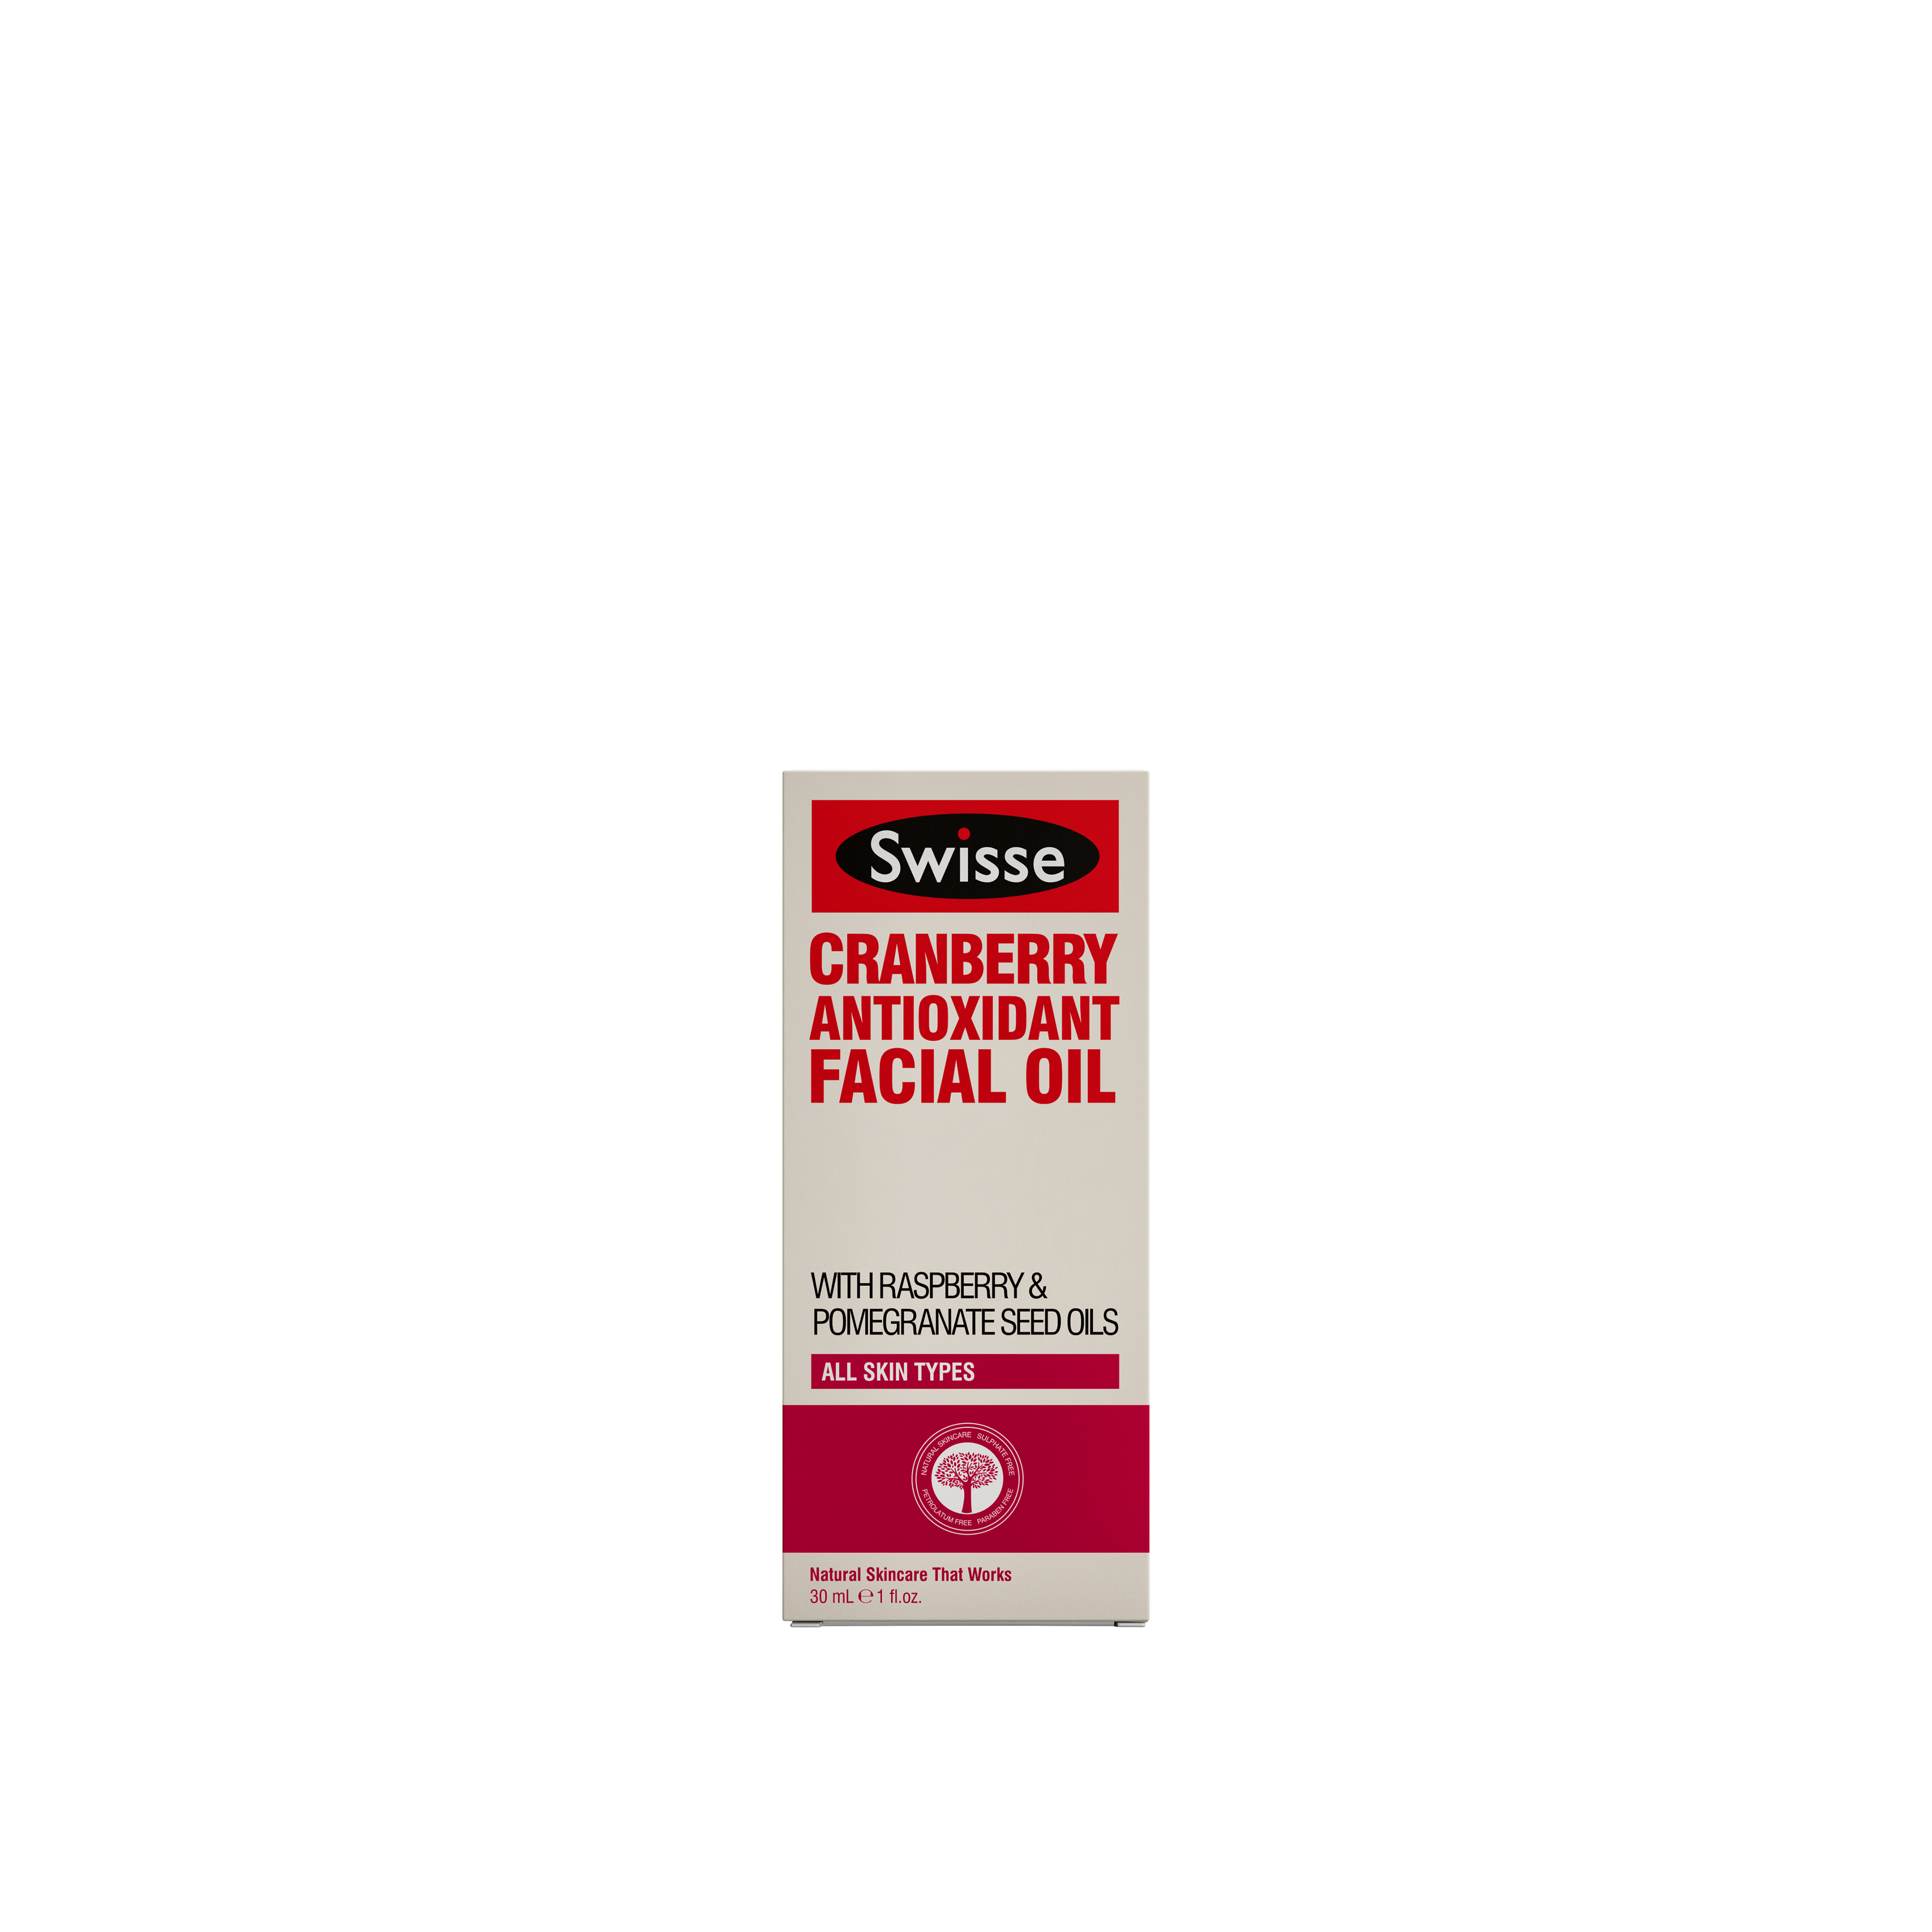 Swisse skincare oils Cranberry Antioxidant Oil carton pack shot